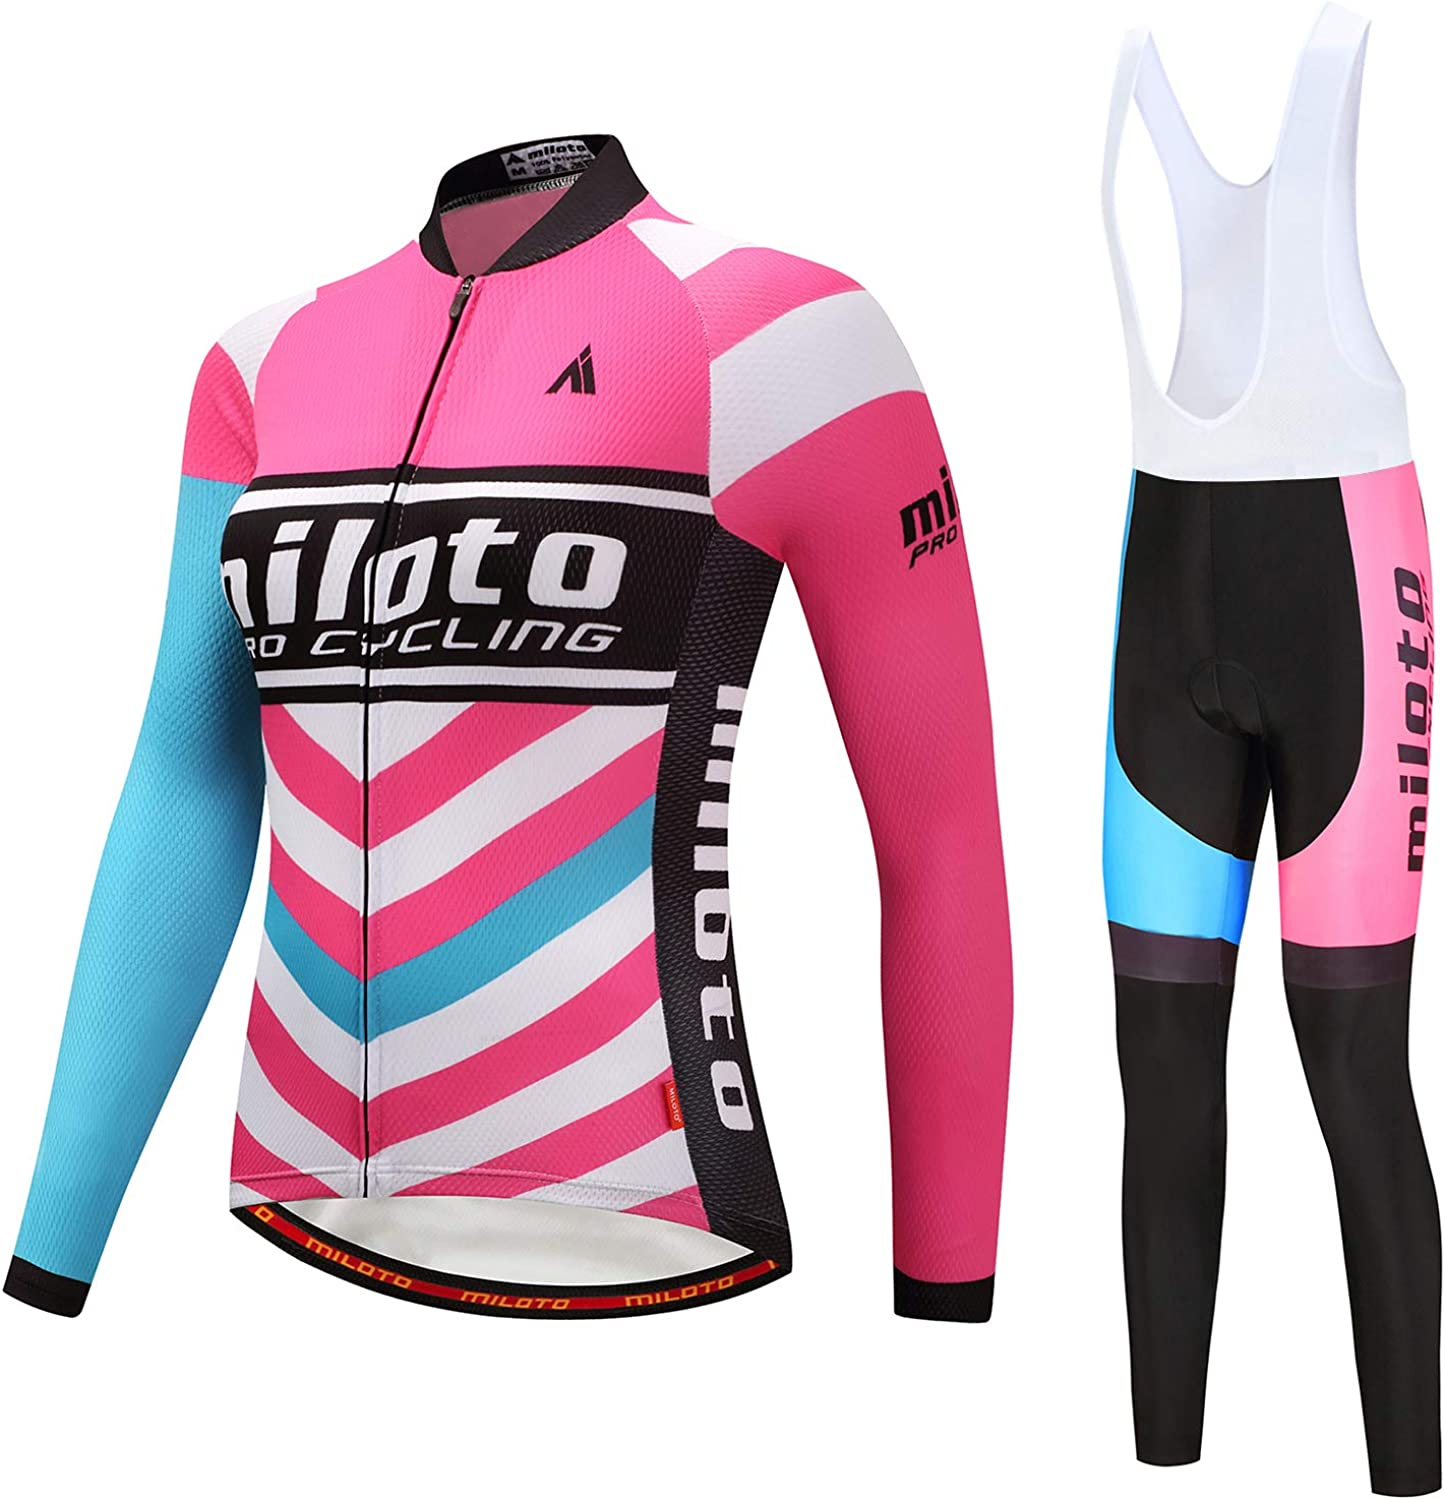 MILOTO Women's Cycling Jersey Set Long Sleeve Top Coolmax Gel Padded Pants